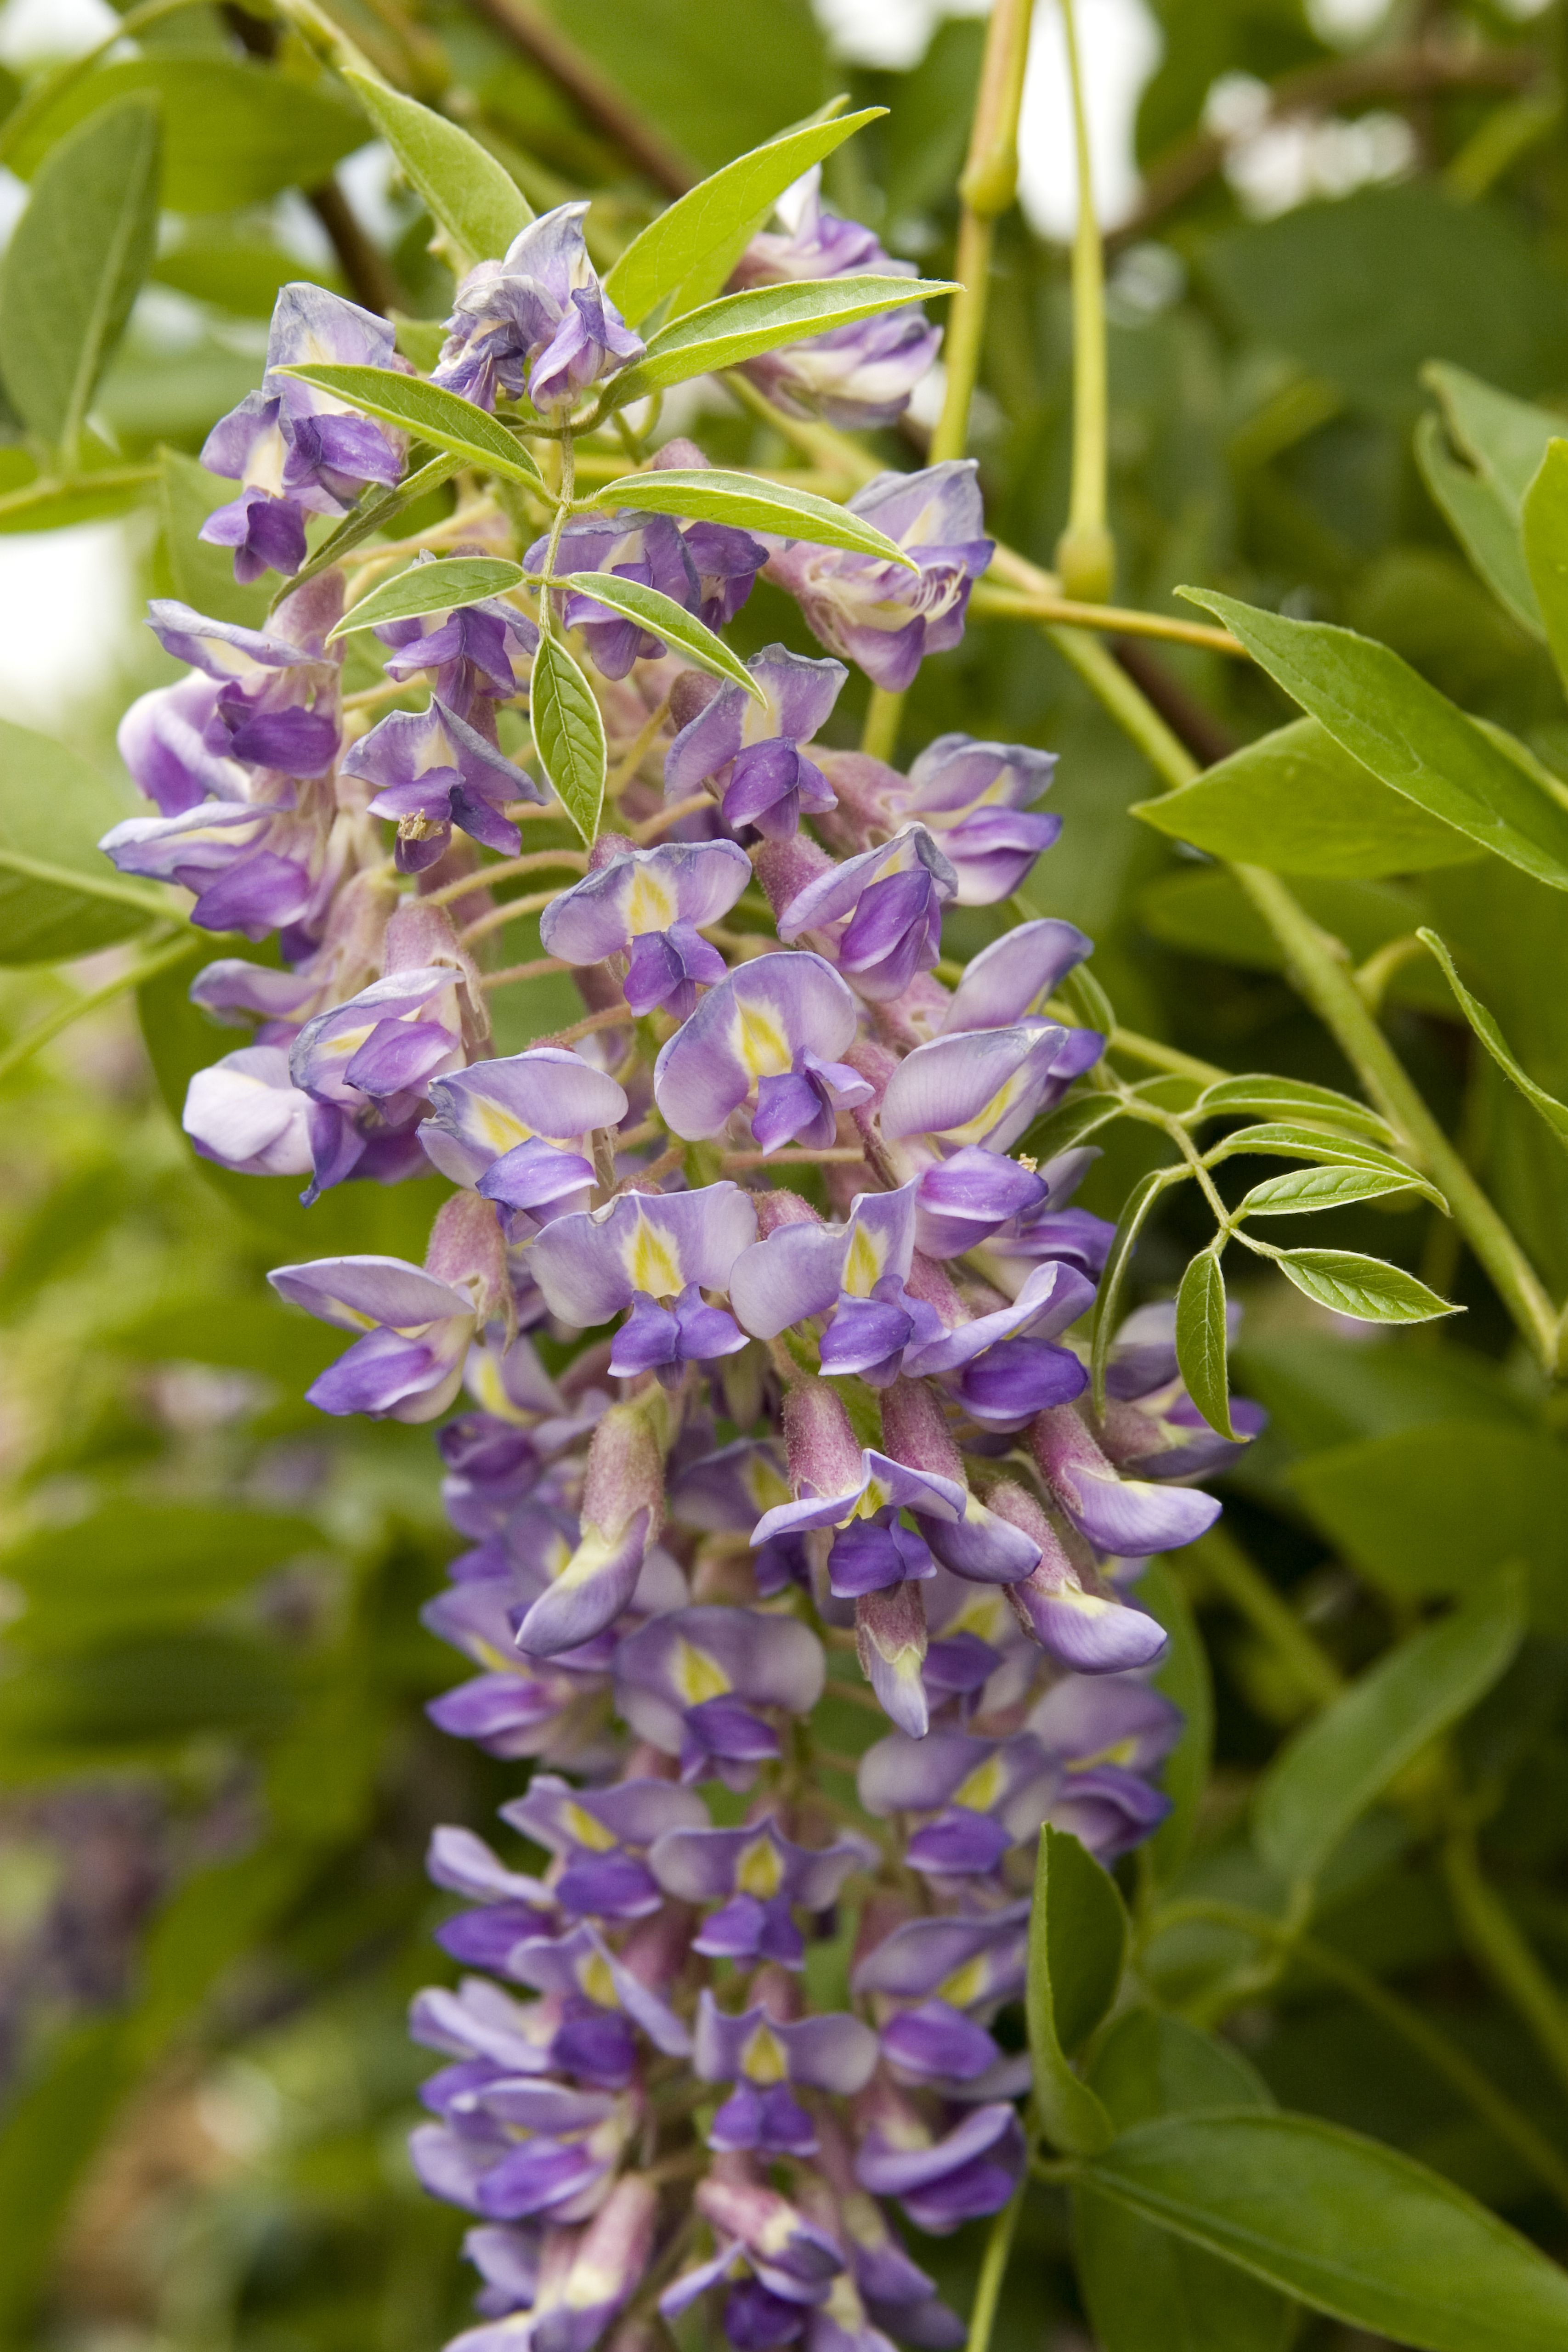 Blue Moon Kentucky Wisteria Is The Hardiest Of Wisteria Dependably Blooms Up To Three Times In A Growing Season Once Estab Flower Garden Plans Wisteria Plants